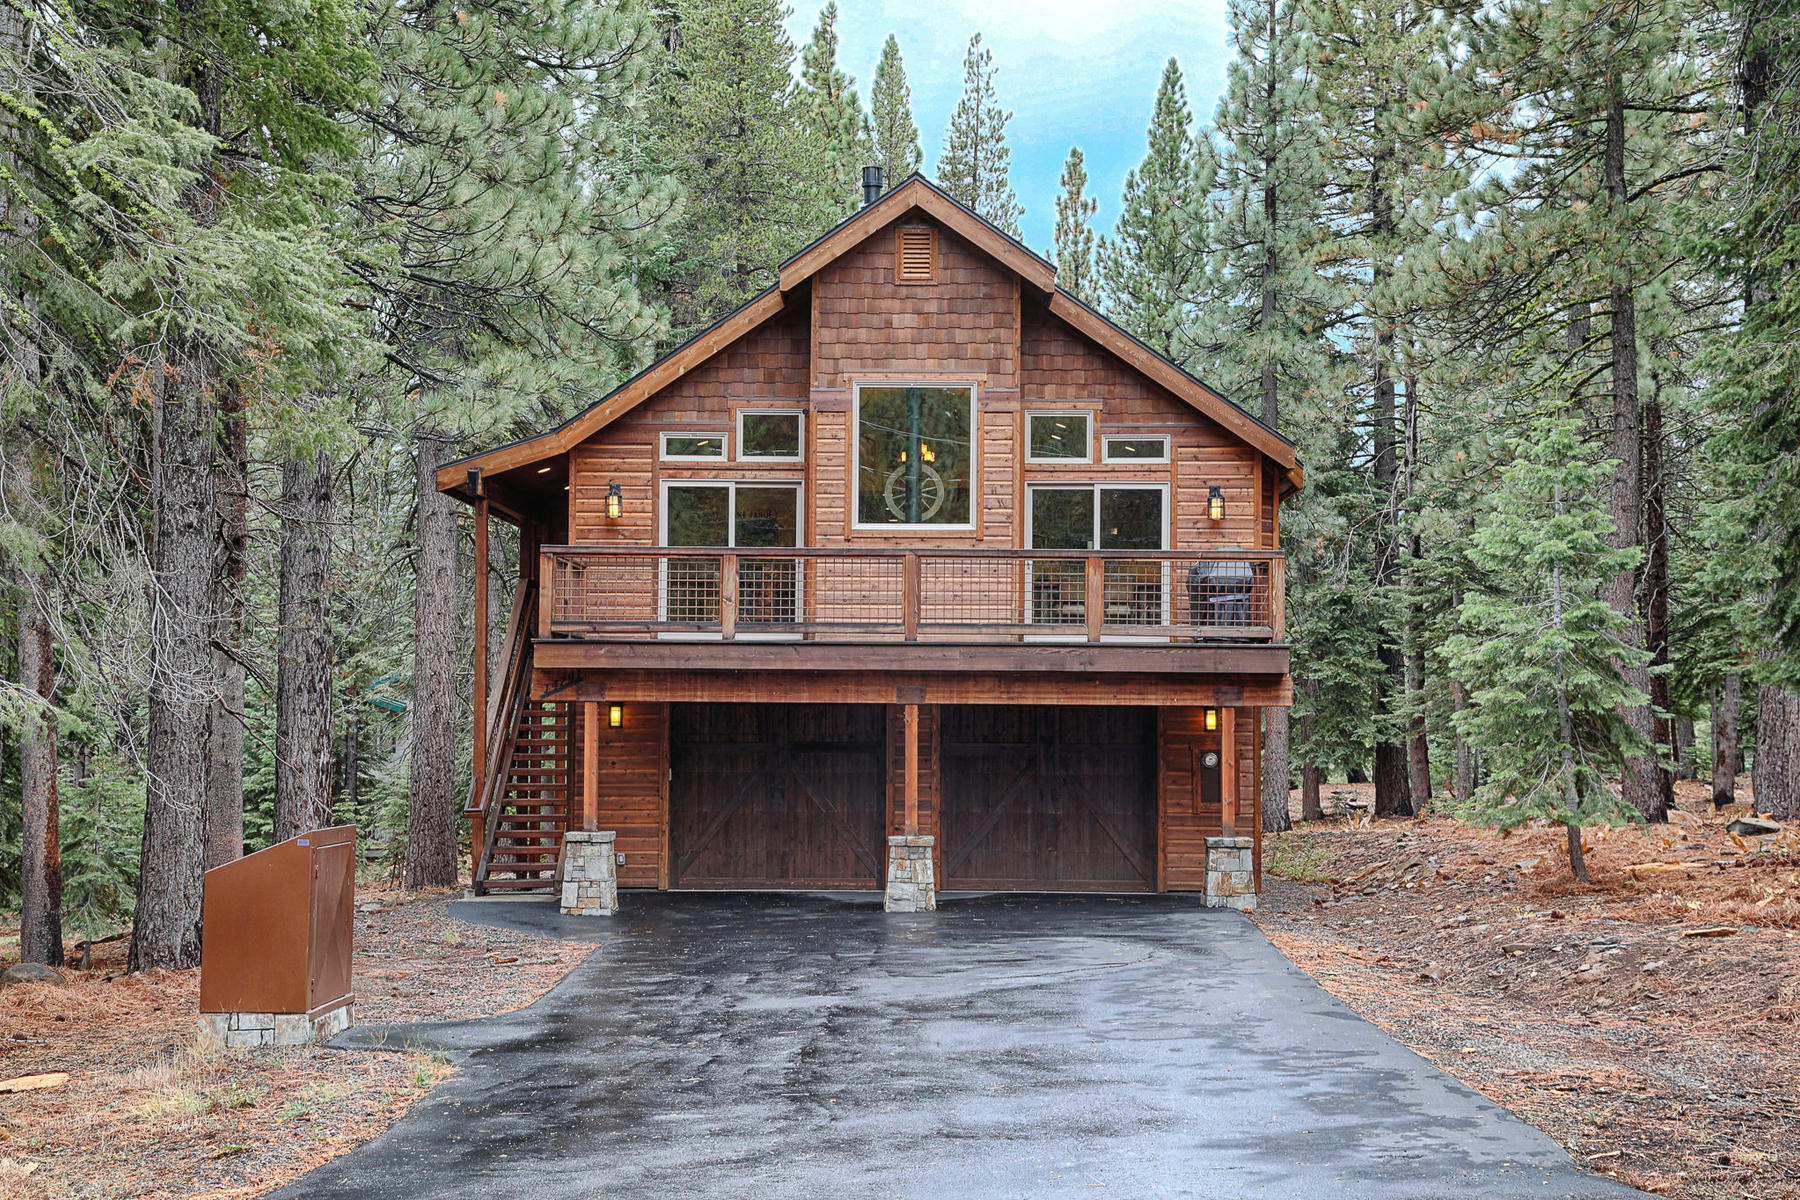 Single Family Home for Active at 14791 Tyrol Road, Truckee CA 14791 Tyrol Road Truckee, California 96161 United States